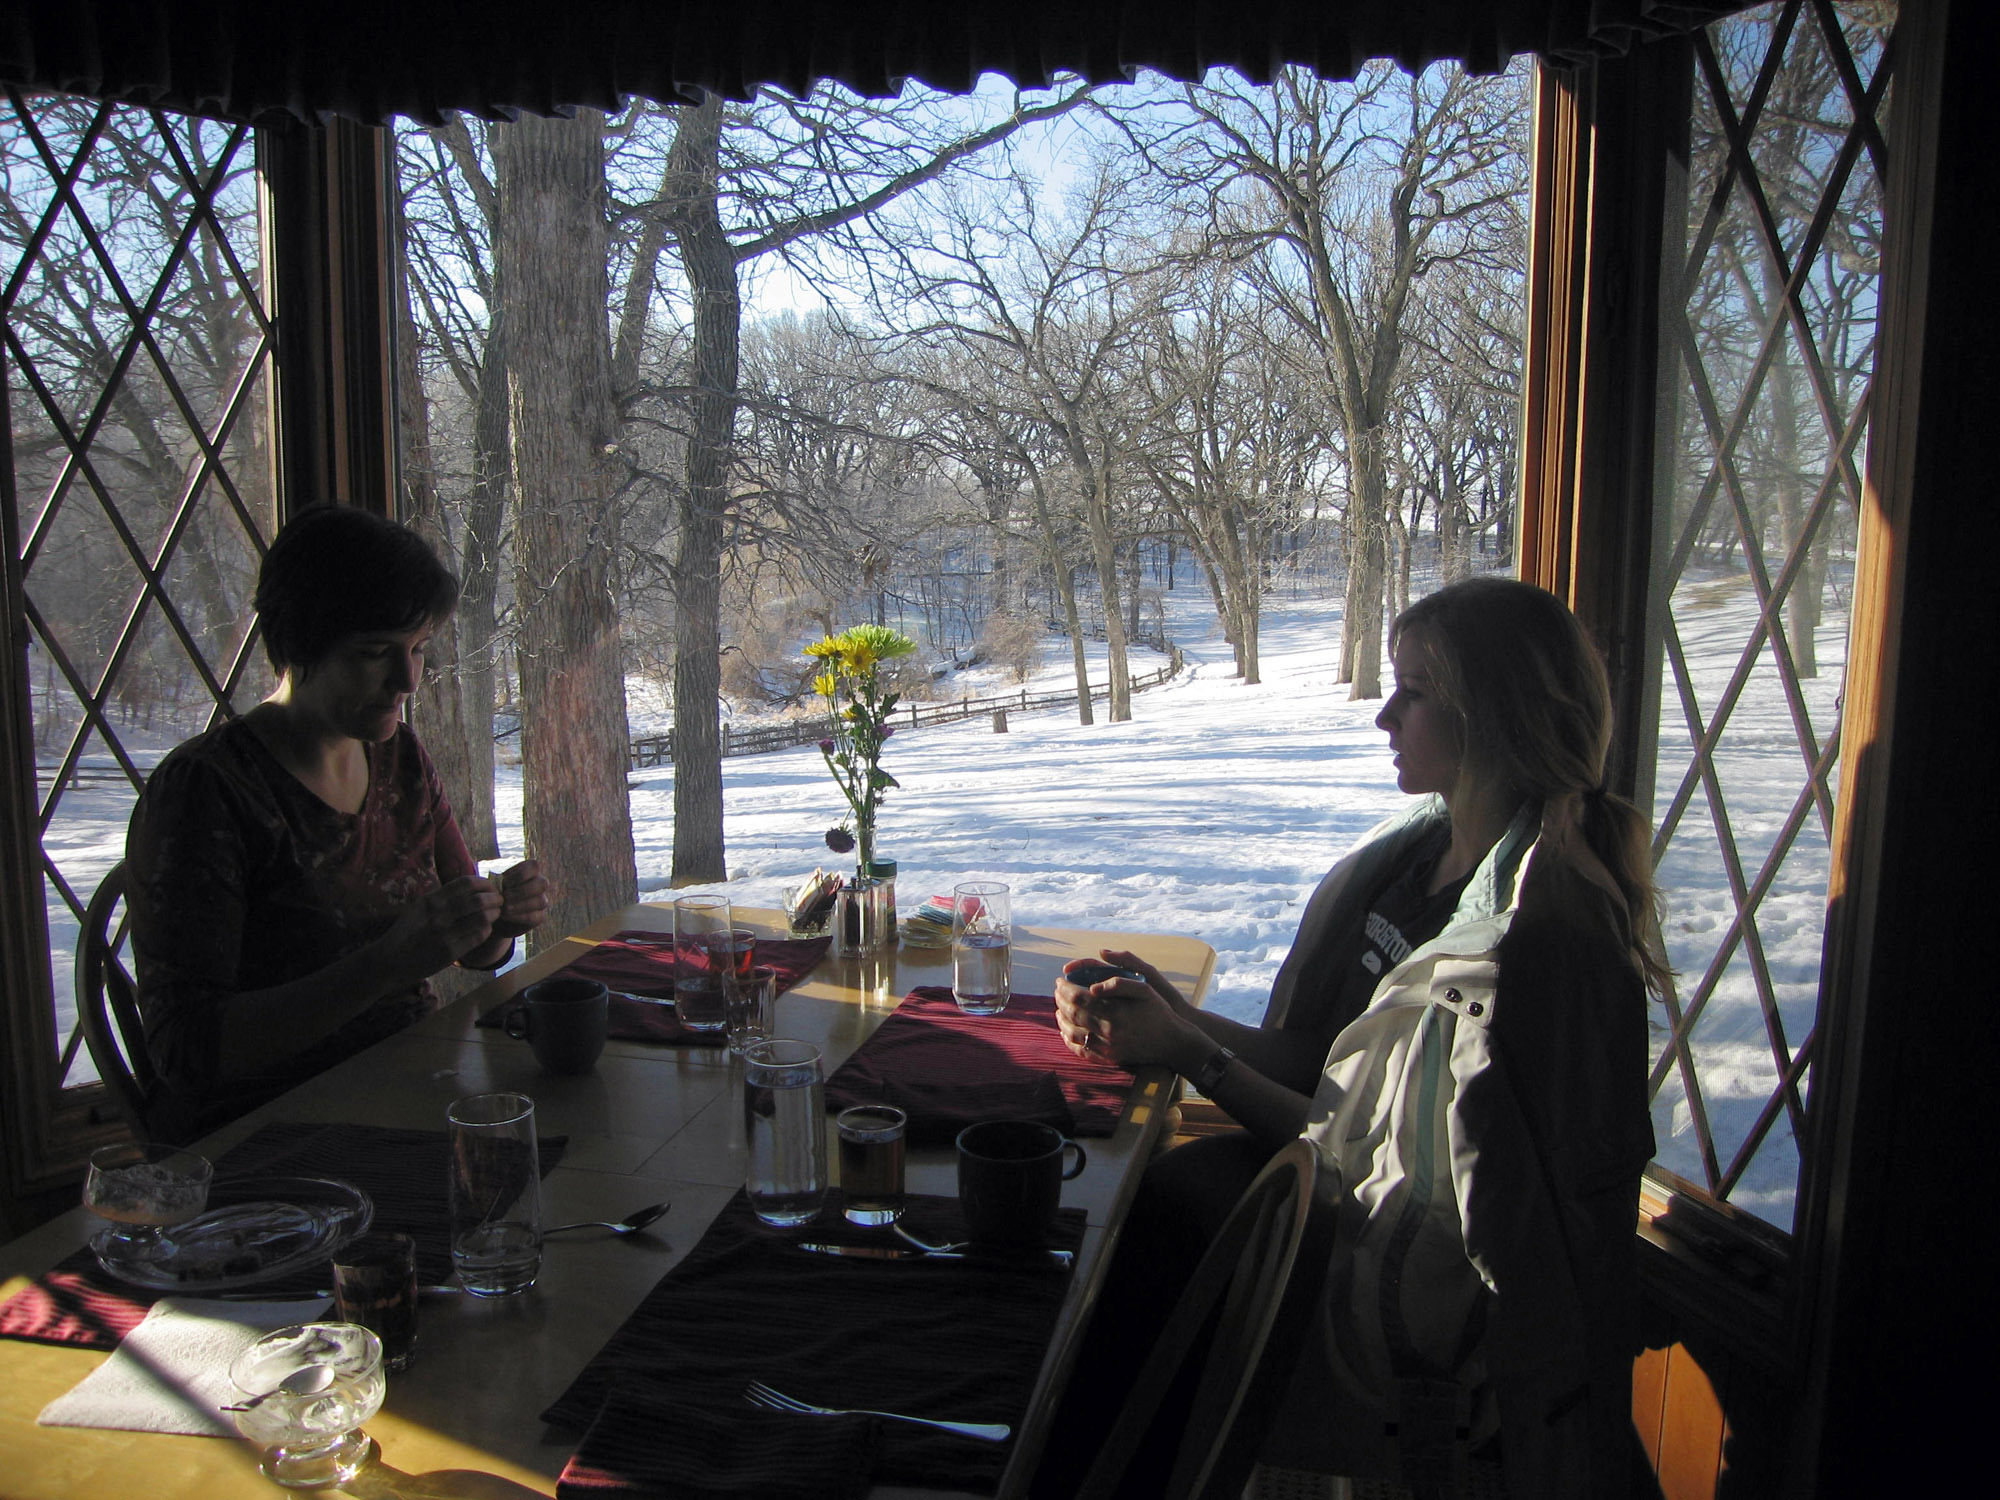 Above and lower: Birdwing Spa near Litchfield, Minnesota helps visitors both embrace winter and melt away any chill.